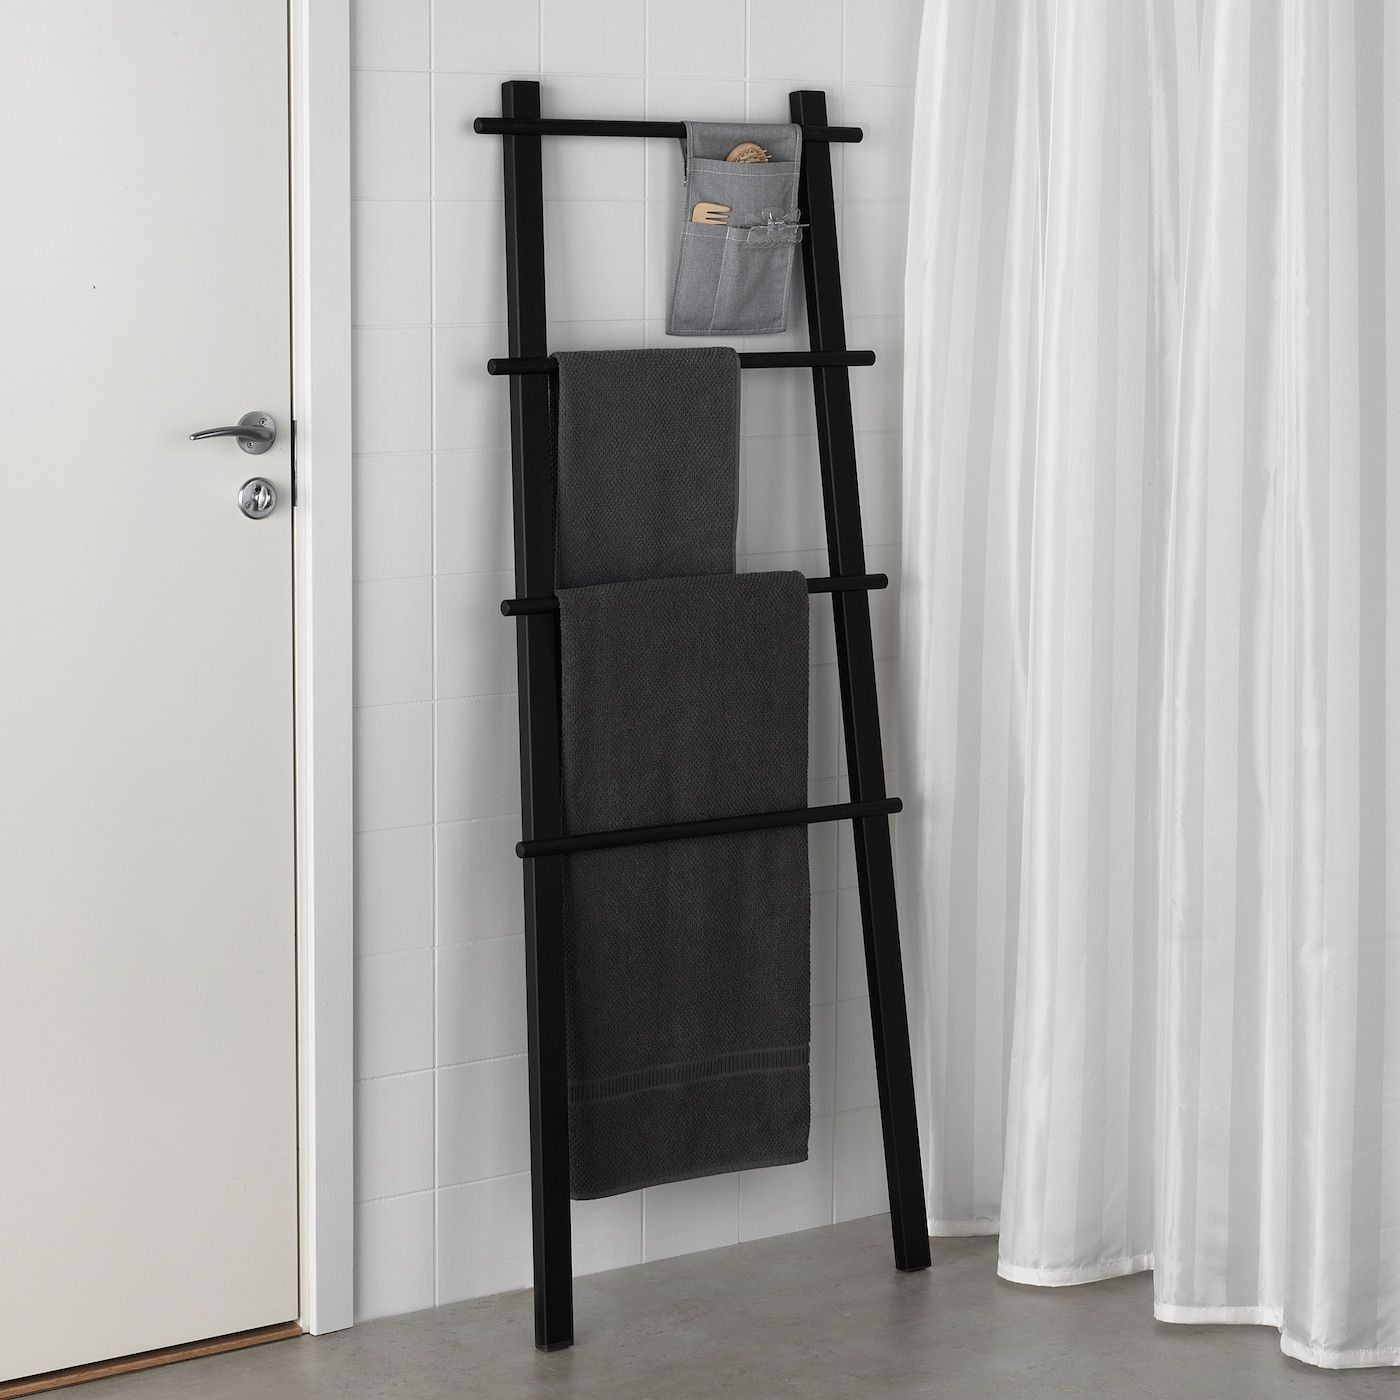 VILTO Towel stand, black - IKEA in 8  Small bathroom decor